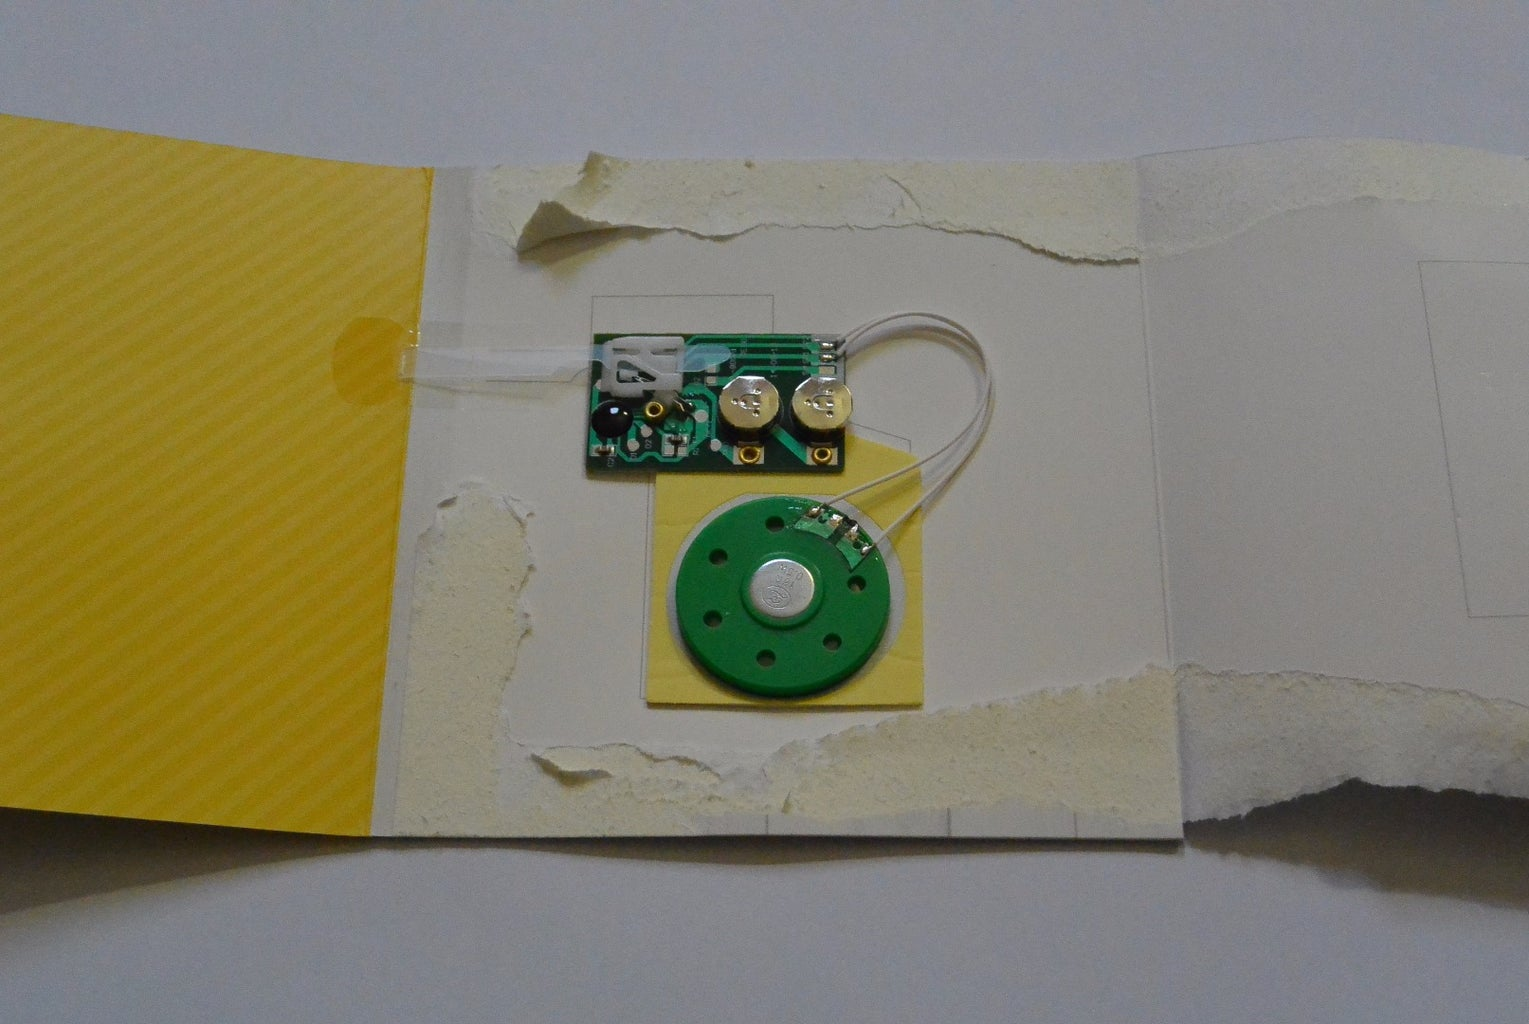 Take Out the Music Component From the Card